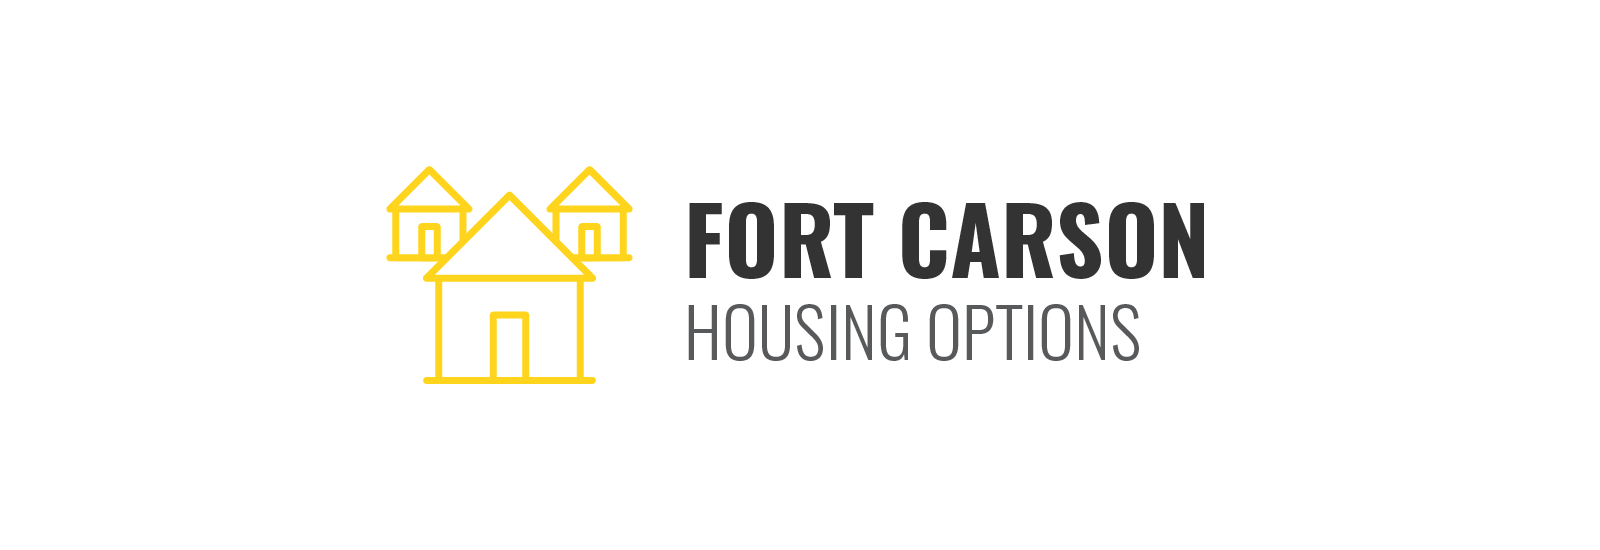 Fort Carson Housing Options